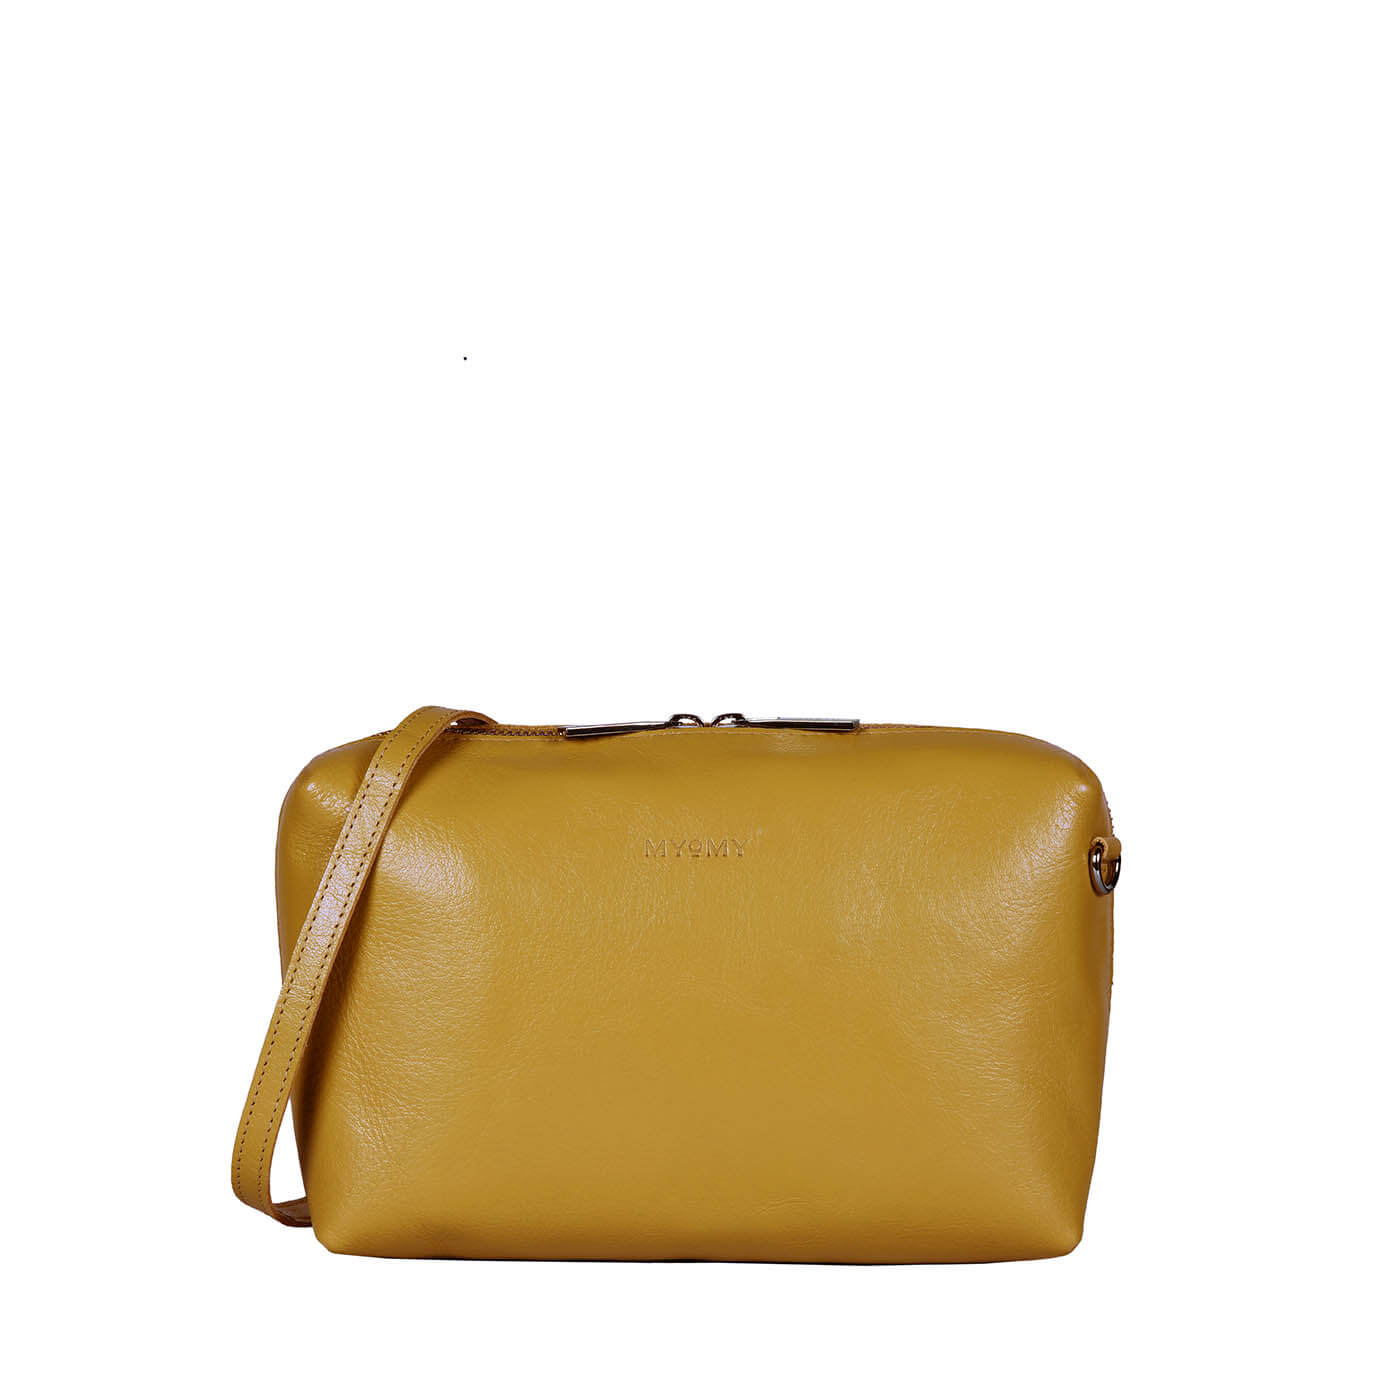 MY BOXY BAG Handbag - seville ocher